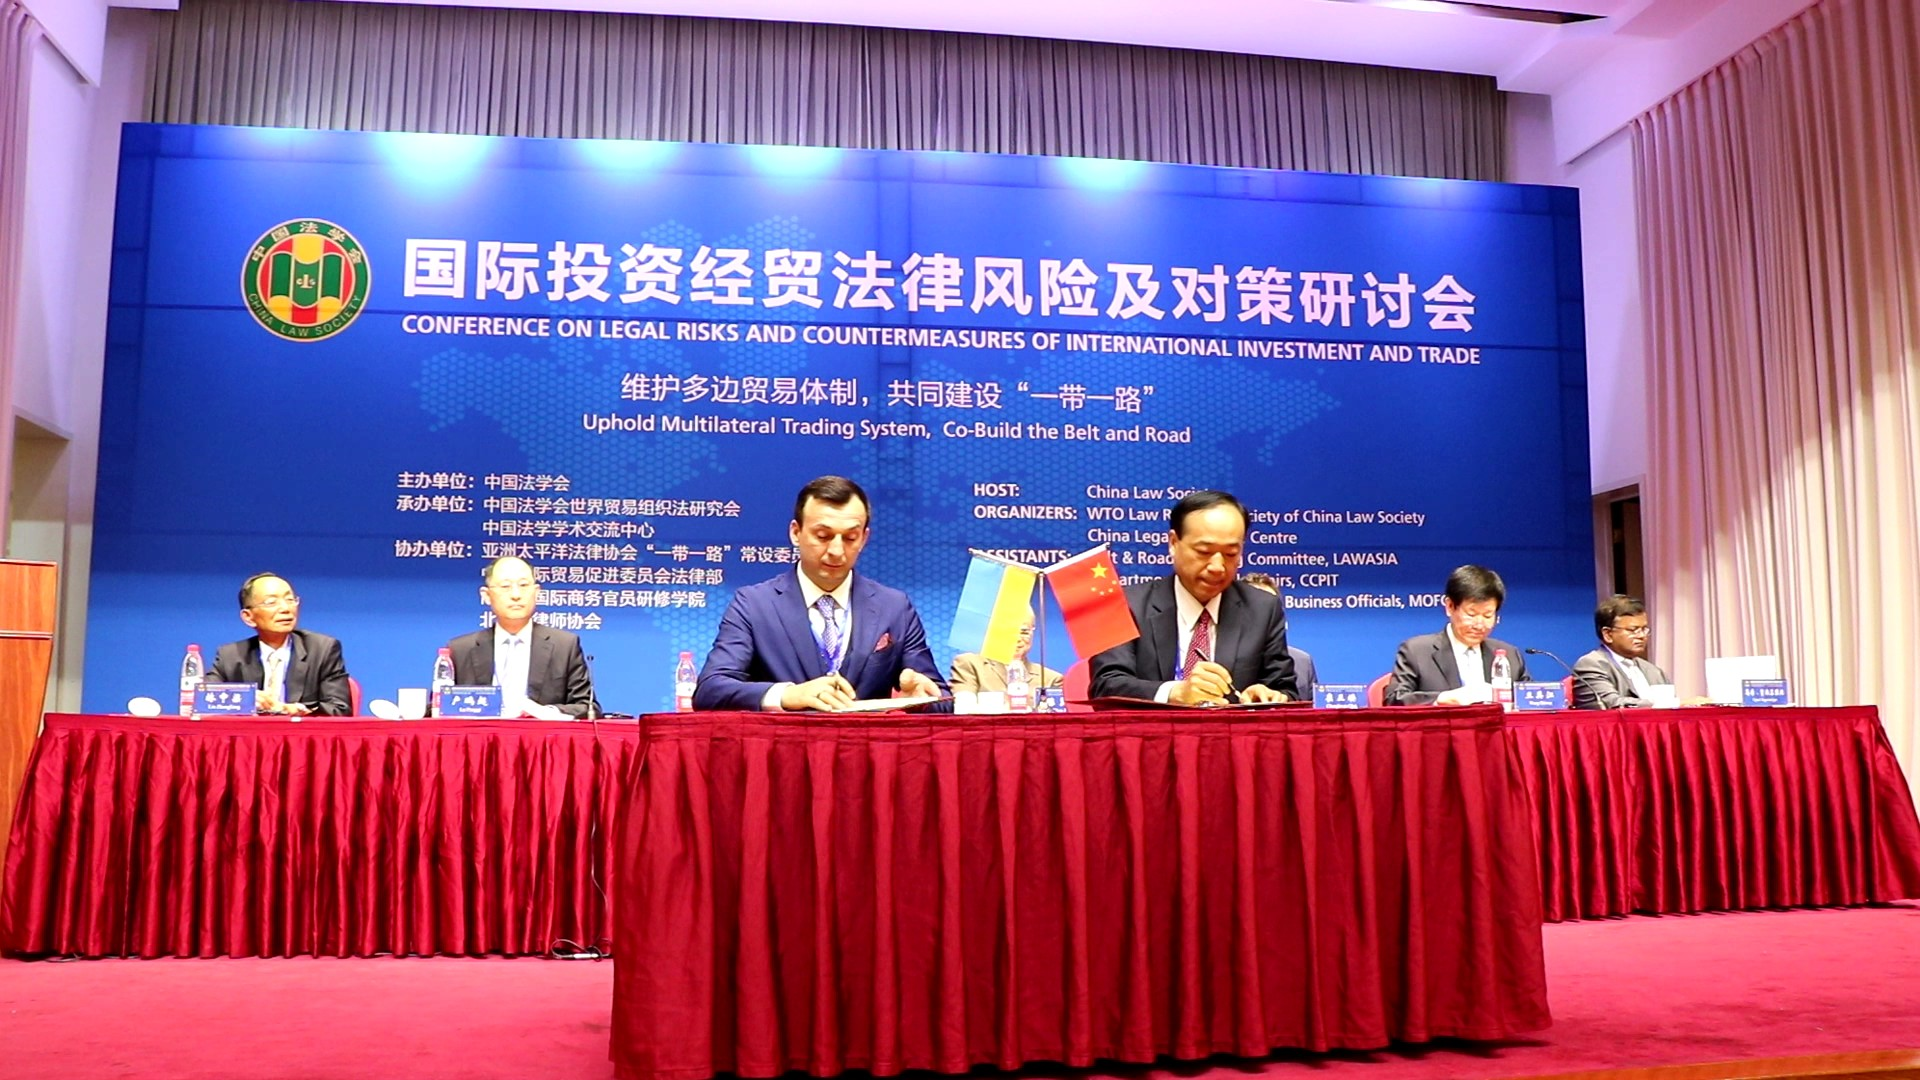 Memorandum of Mutual Cooperation with China Legal Exchange Center